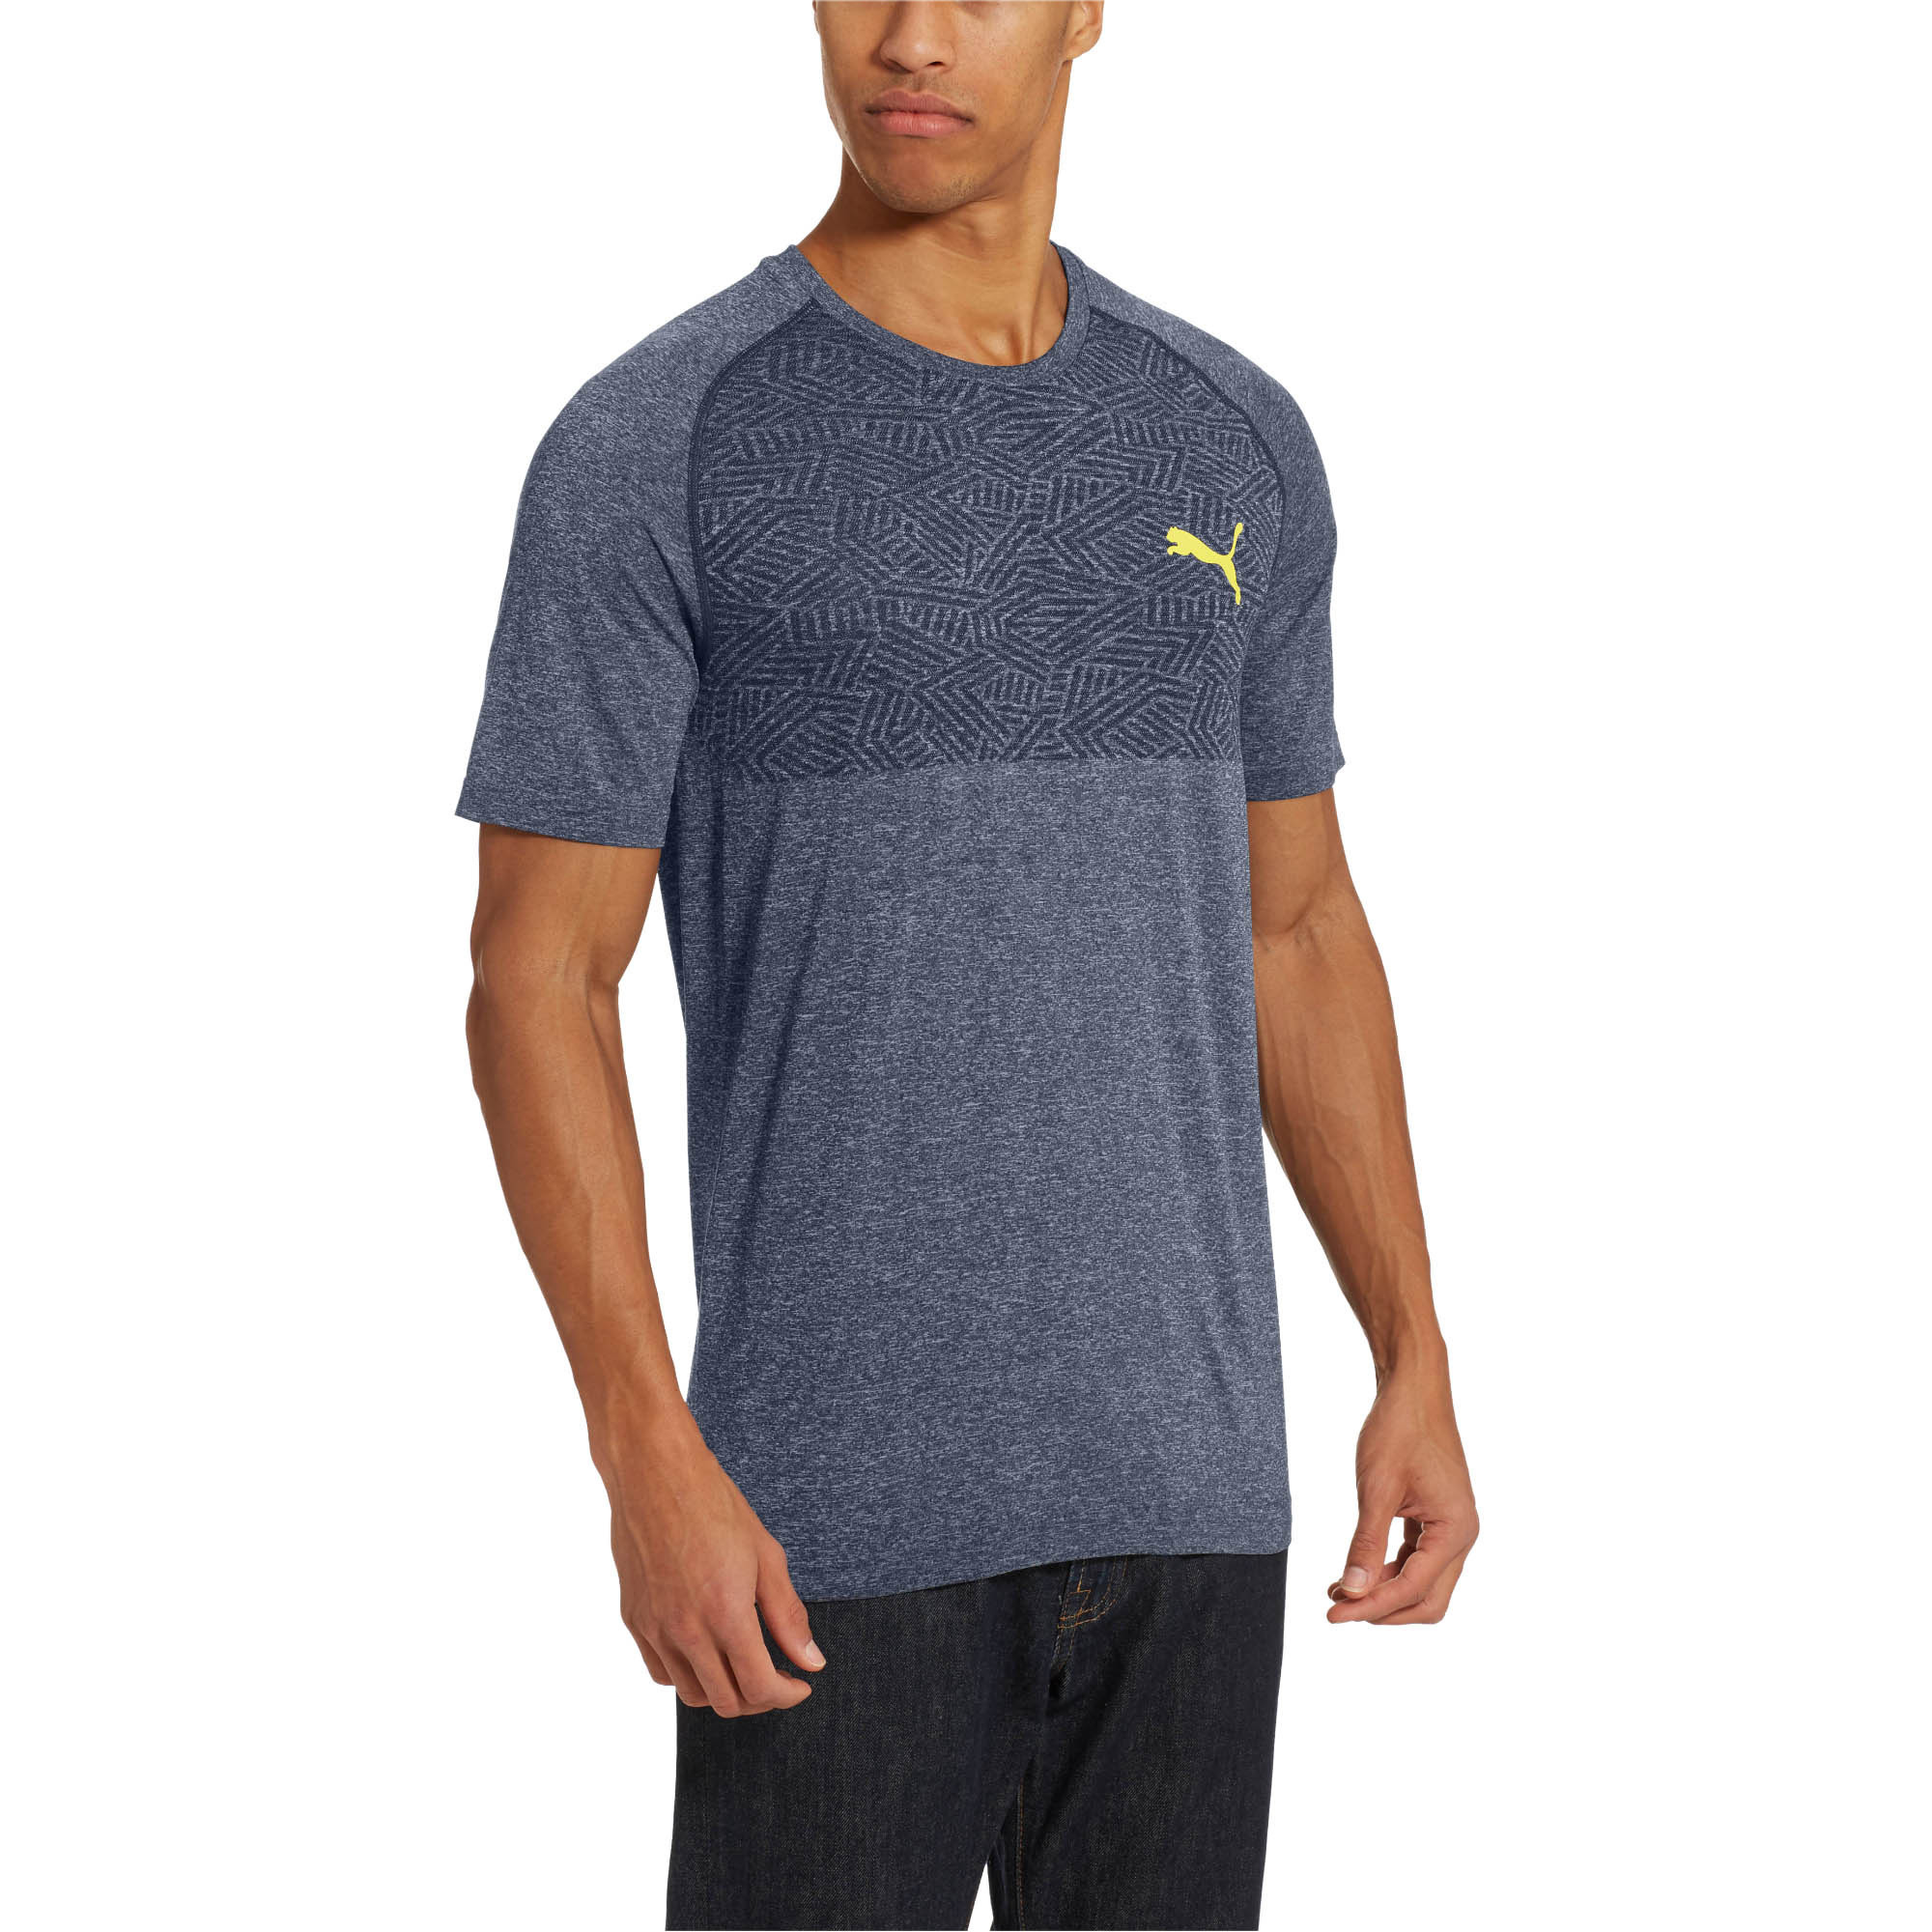 PUMA-Tec-Sports-Men-s-evoKNIT-Tee-Men-Tee-Basics thumbnail 4